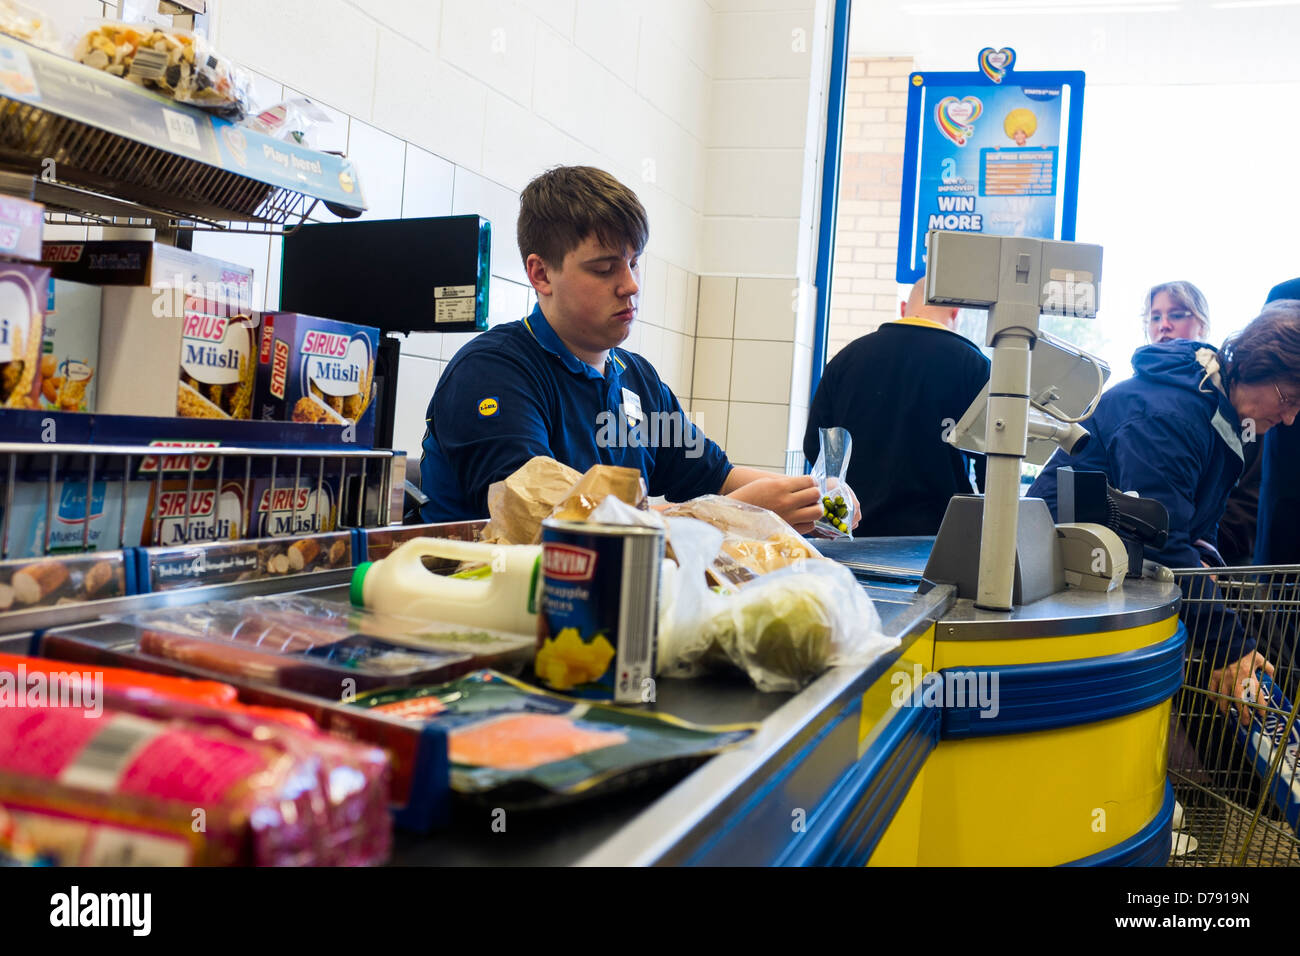 A young man working on the checkout at Lidl supermarket, UK - Stock Image